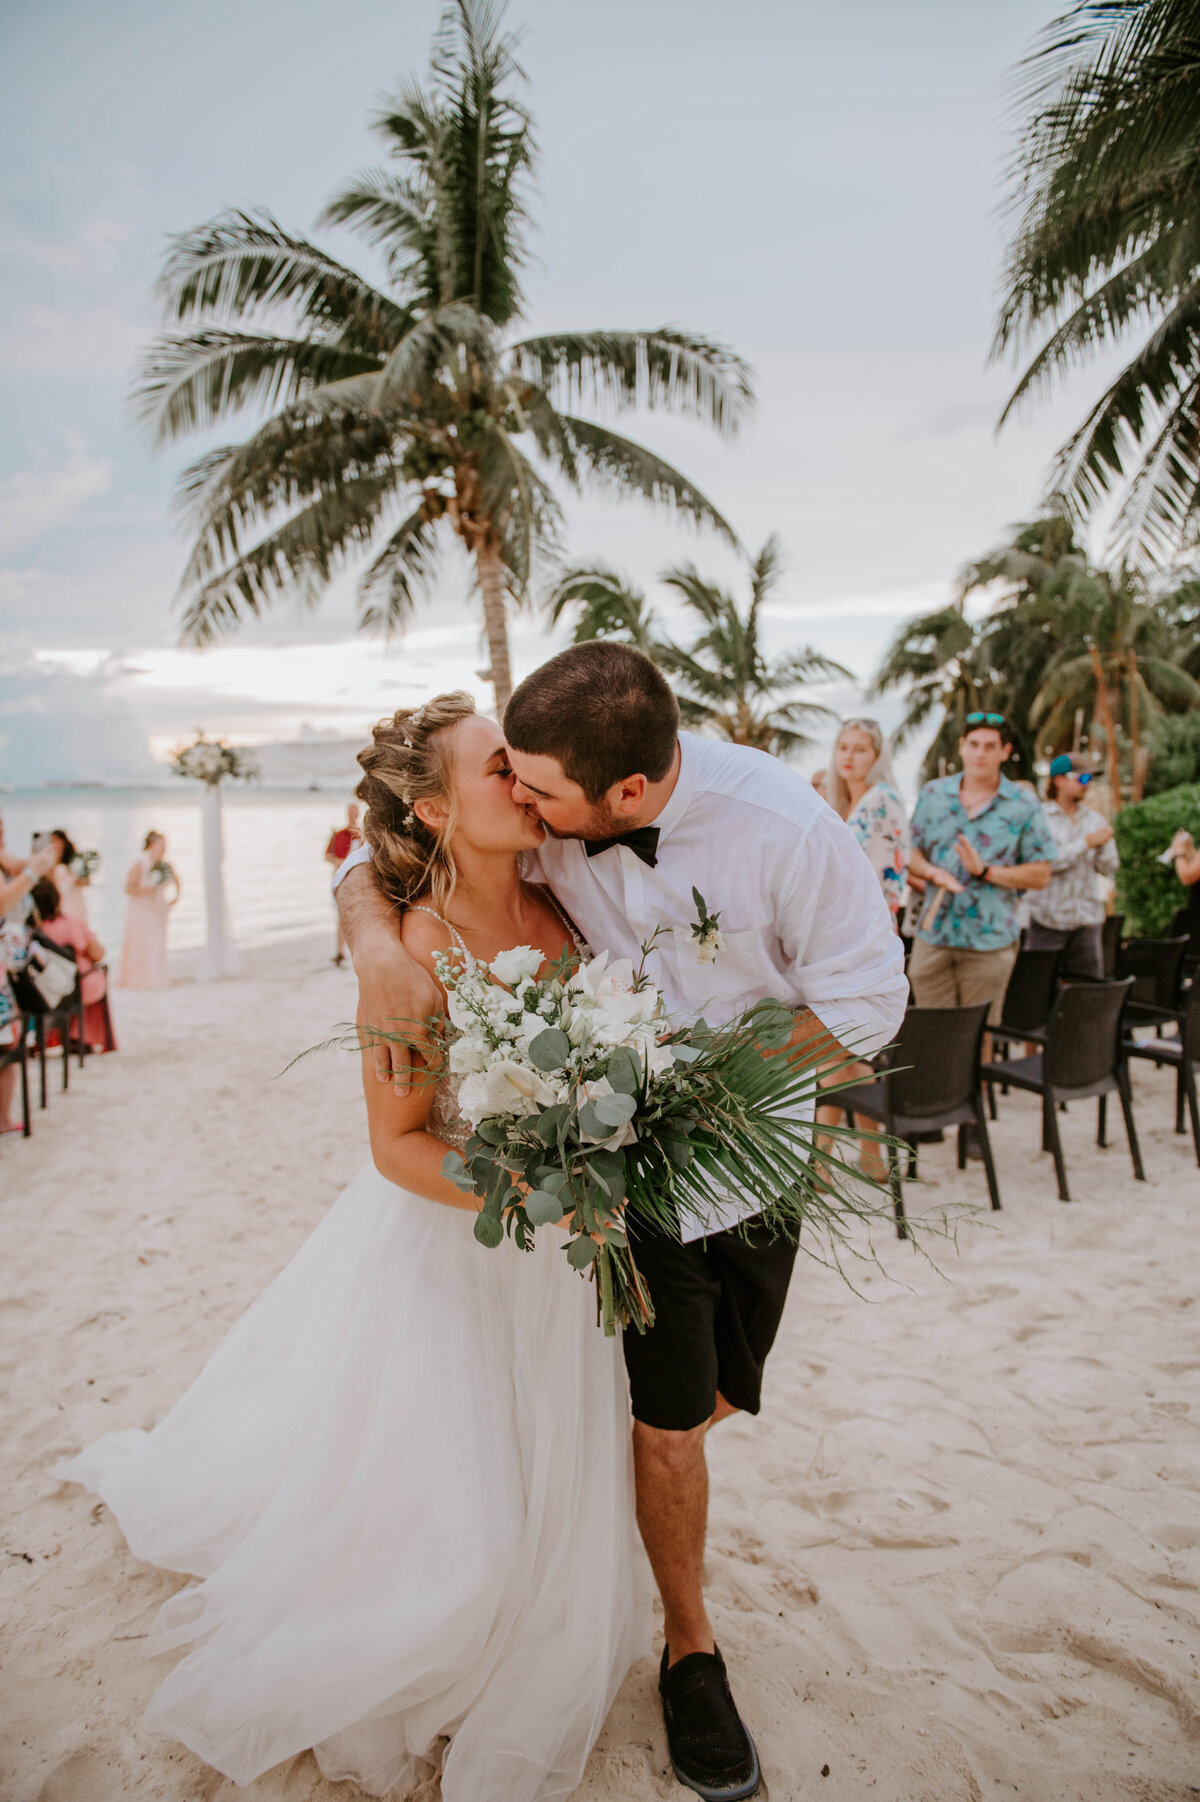 isla-mujeres-wedding-photographer-guthrie-zama-mexico-tulum-cancun-beach-destination-1301